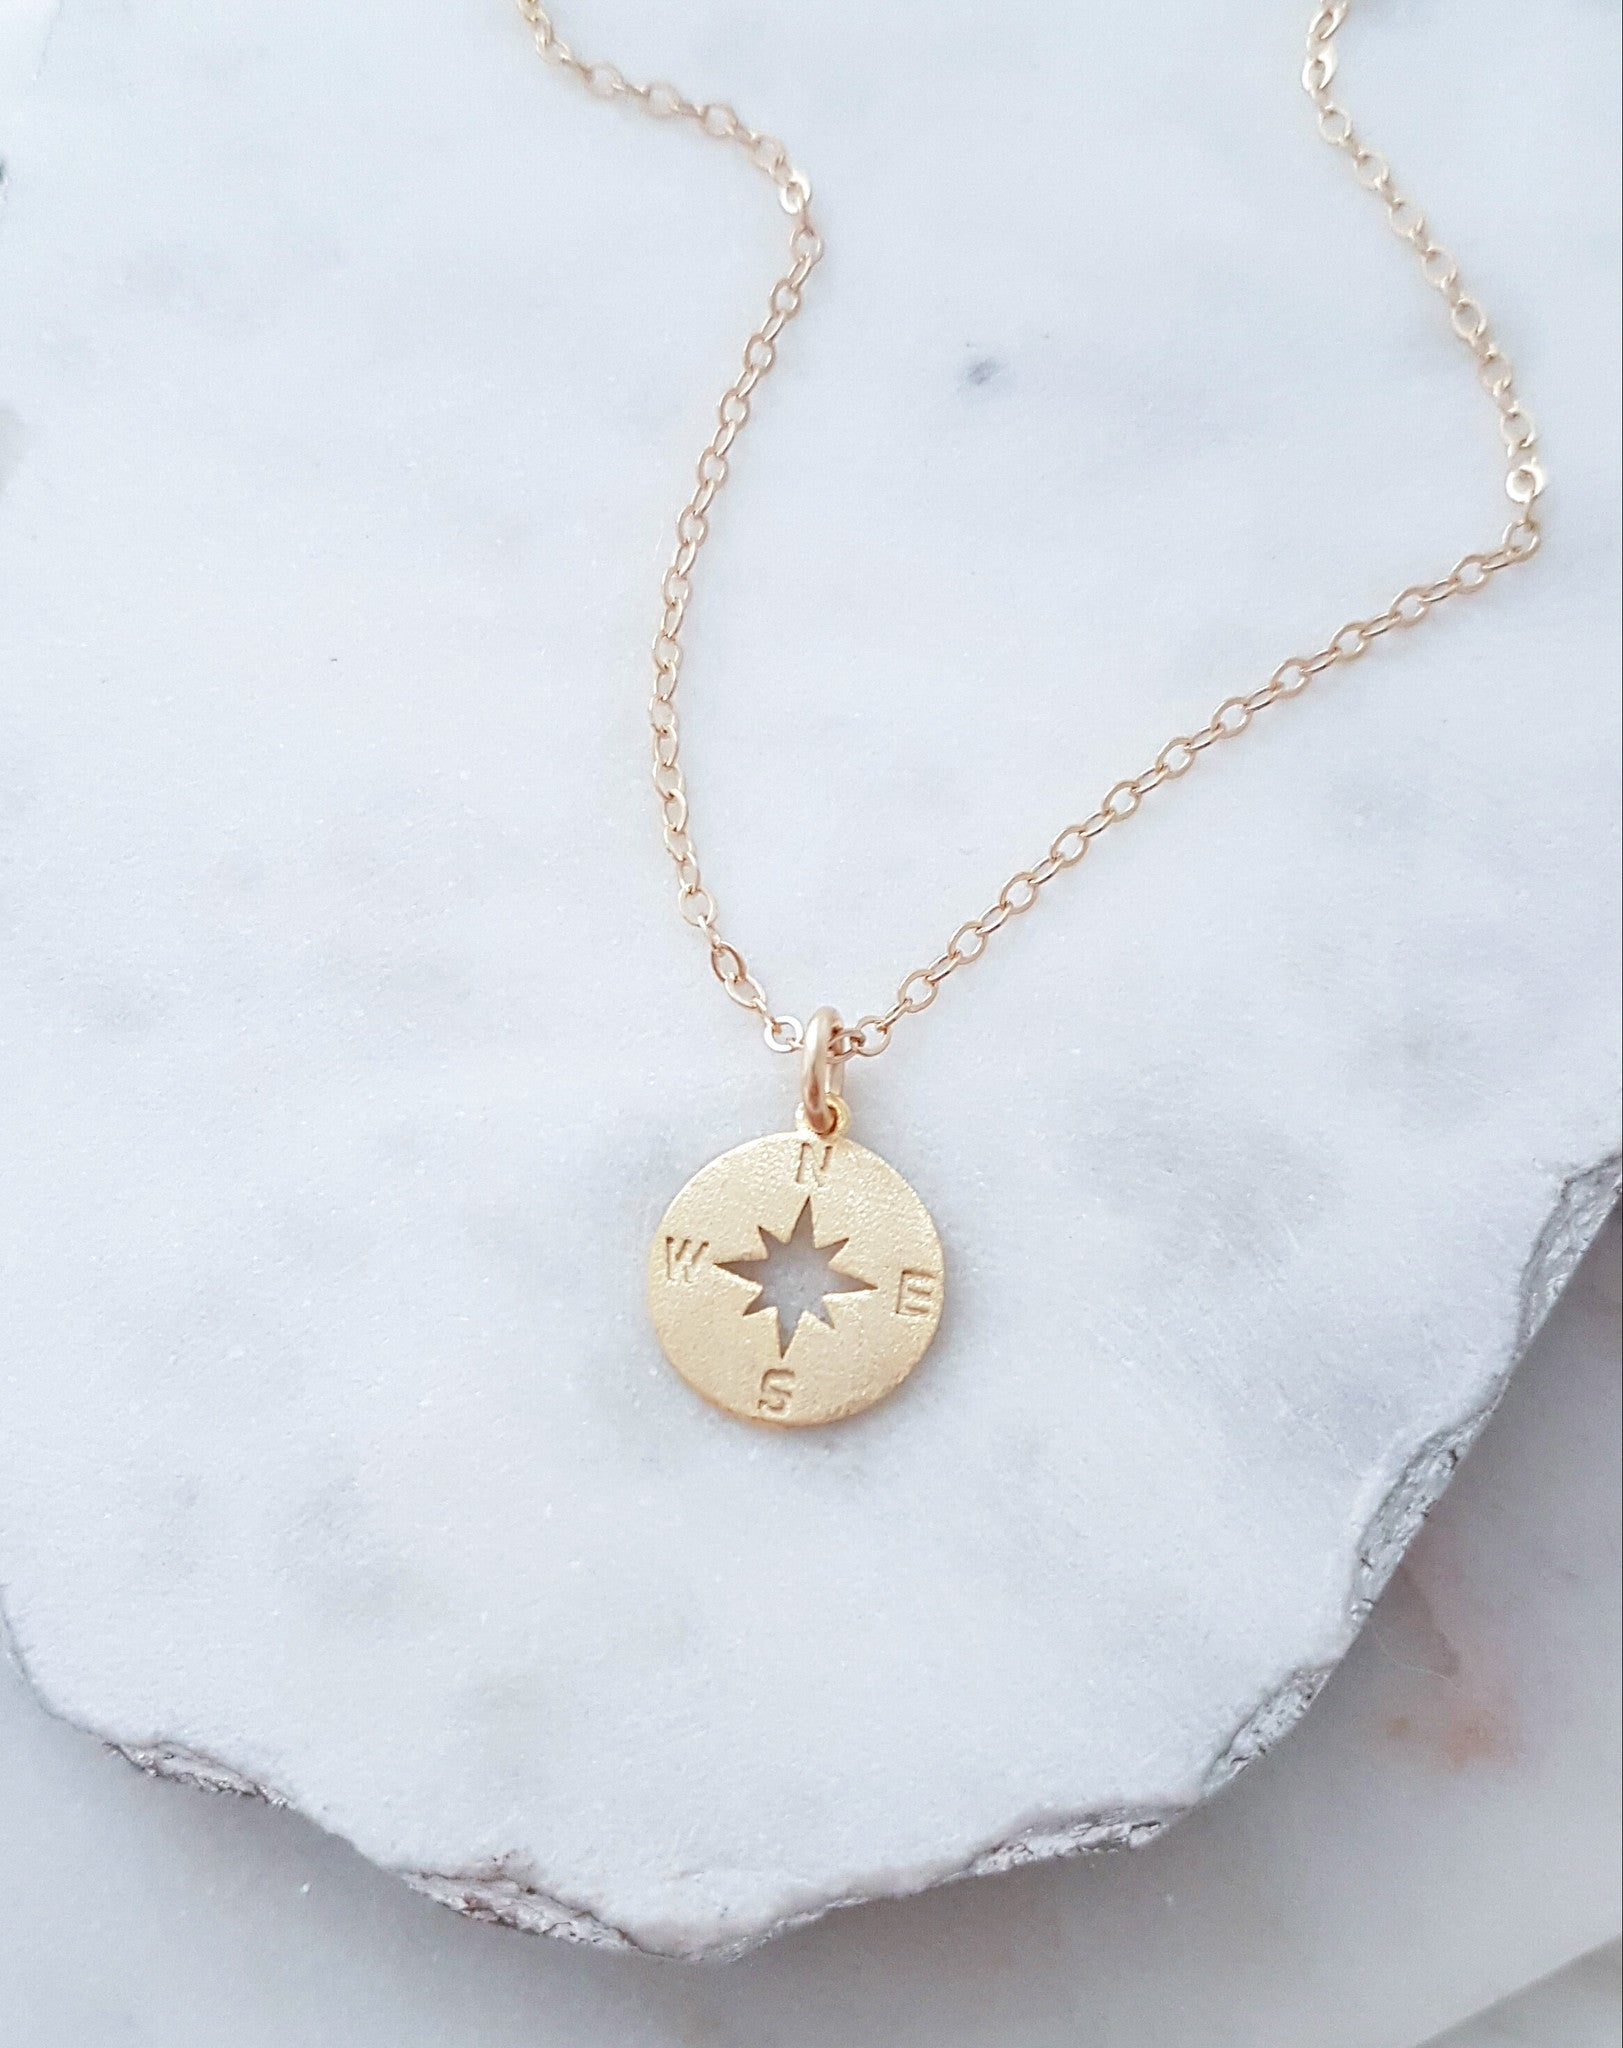 jewelry nautical pendant gold compass company summer todaycharm products necklace necklaces charm ar